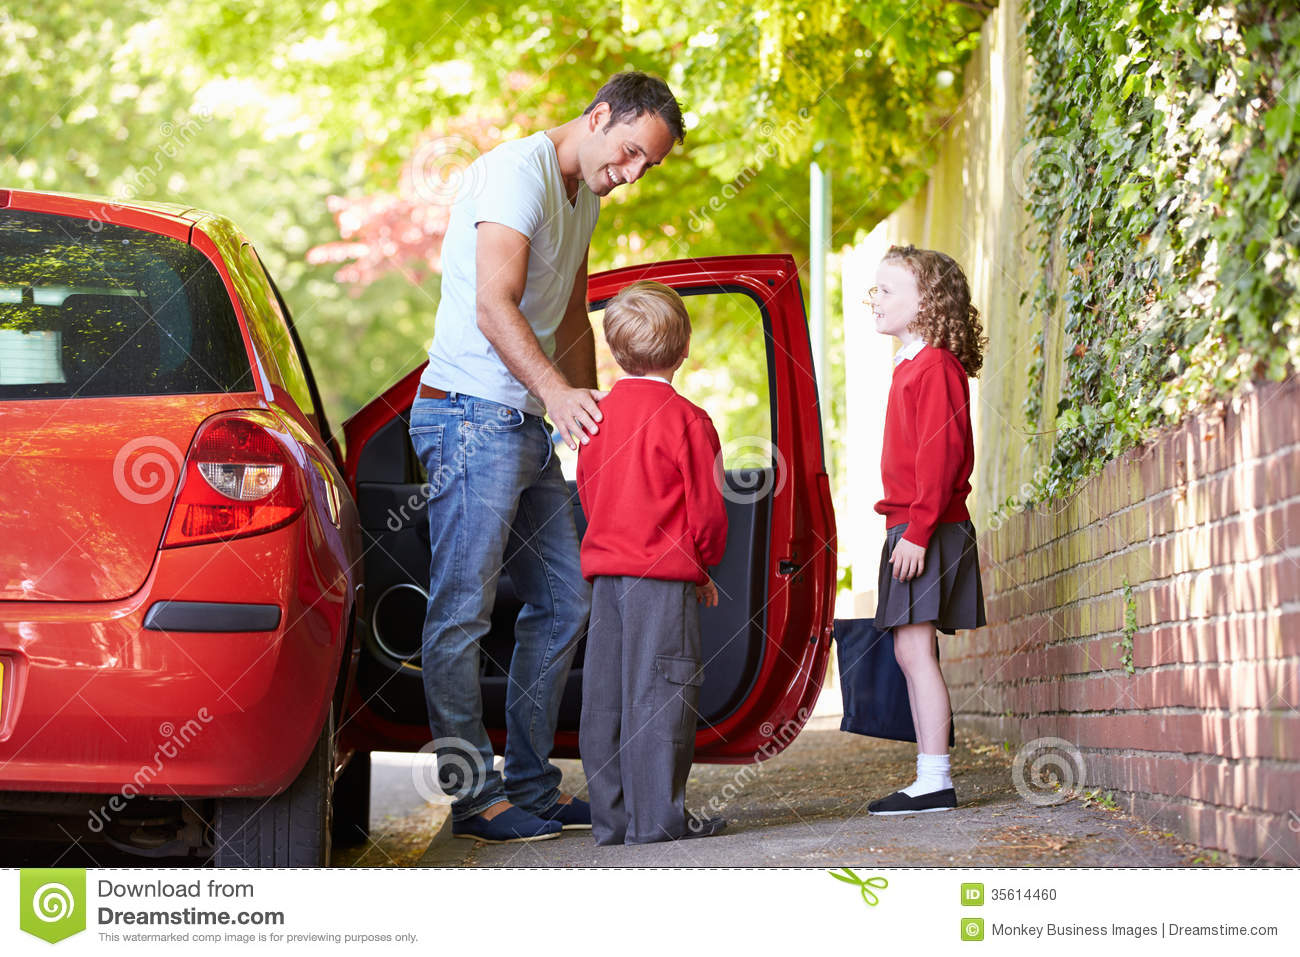 1298375 together with Write A Letter Asking For A Refund moreover Impressive Residential Garage Door Sizes 9 Single Garage Door Size additionally Watch as well Machine Room Less Passenger Elevator Dimensions 60482559070. on person opening car door